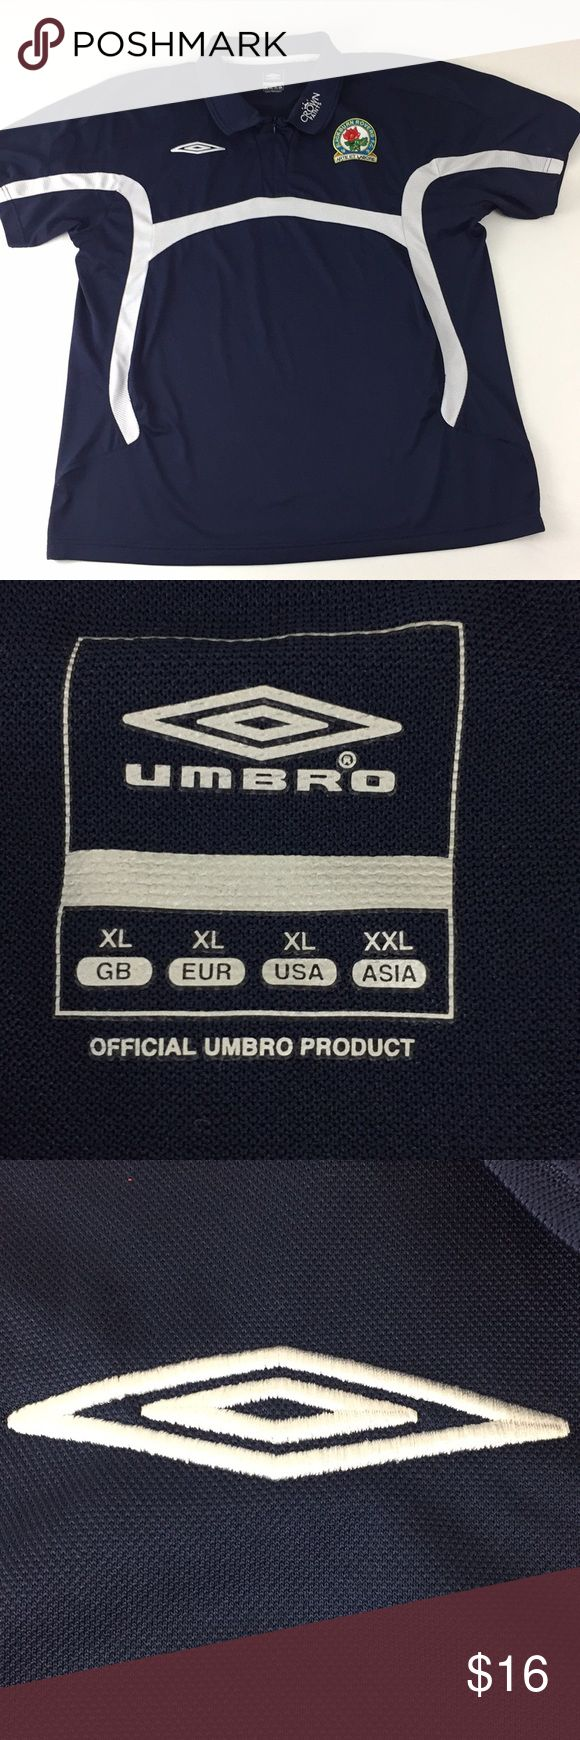 "Umbro Navy Short Sleeve Shirt.  I9 Umbro Navy Short Sleeve zip collared Shirt with white mesh detail.  Men's size XL. Embroidered Umbro logo on chest. Blackburn Rovers F.C. Art et Labore patch on chest. 100% polyester. Measurements are approximate. Chest:  48"", length: 28"". Umbro Shirts Polos"